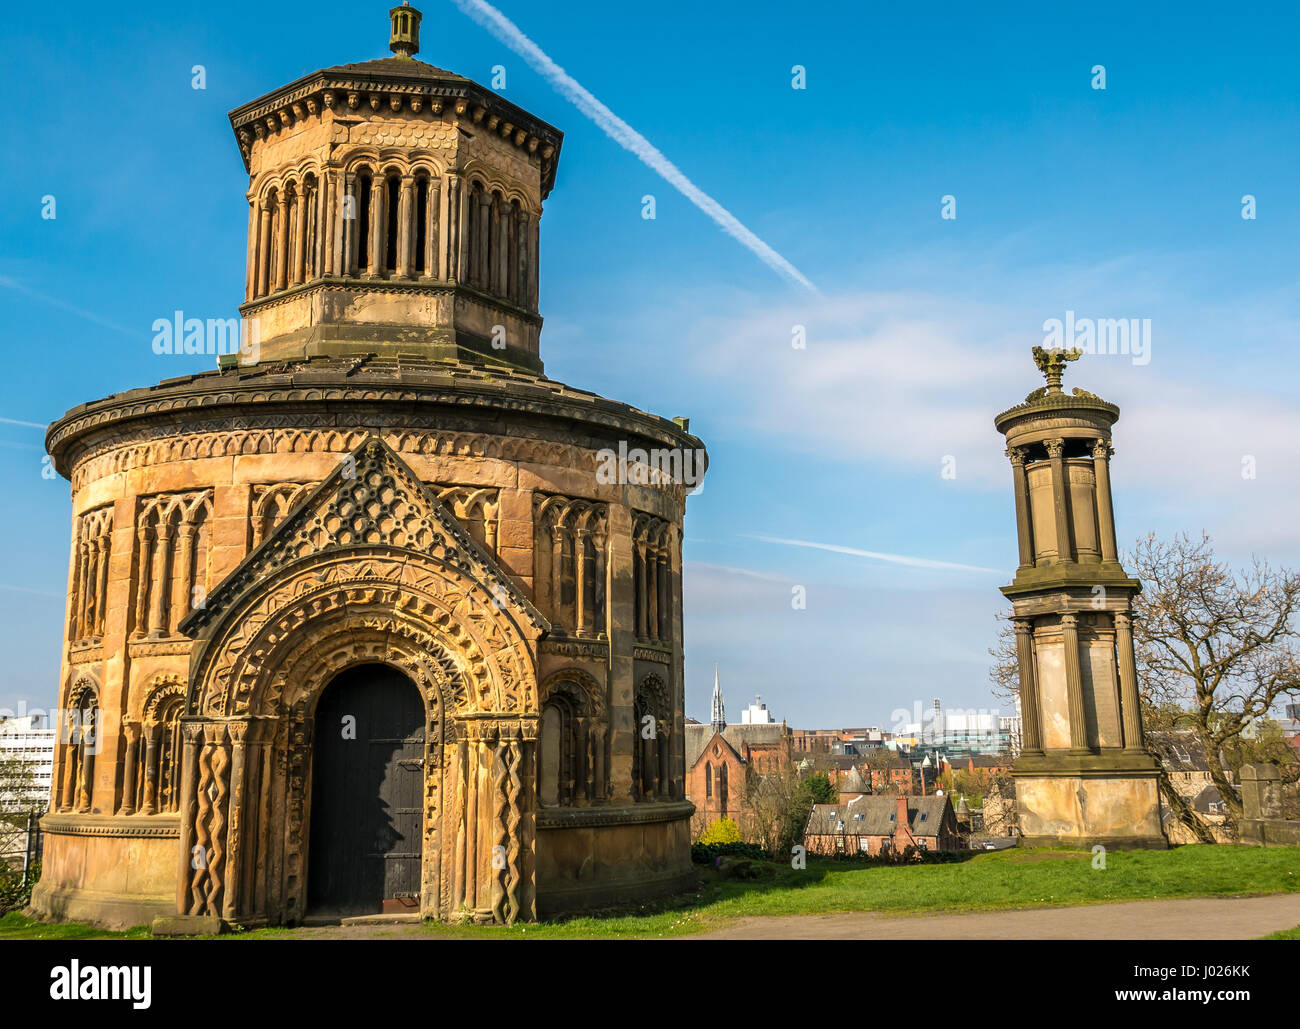 Elaborately carved round Victorian mausoleum, Necropolis hilltop overlooking Glasgow, Scotland, UK, with blue sky - Stock Image